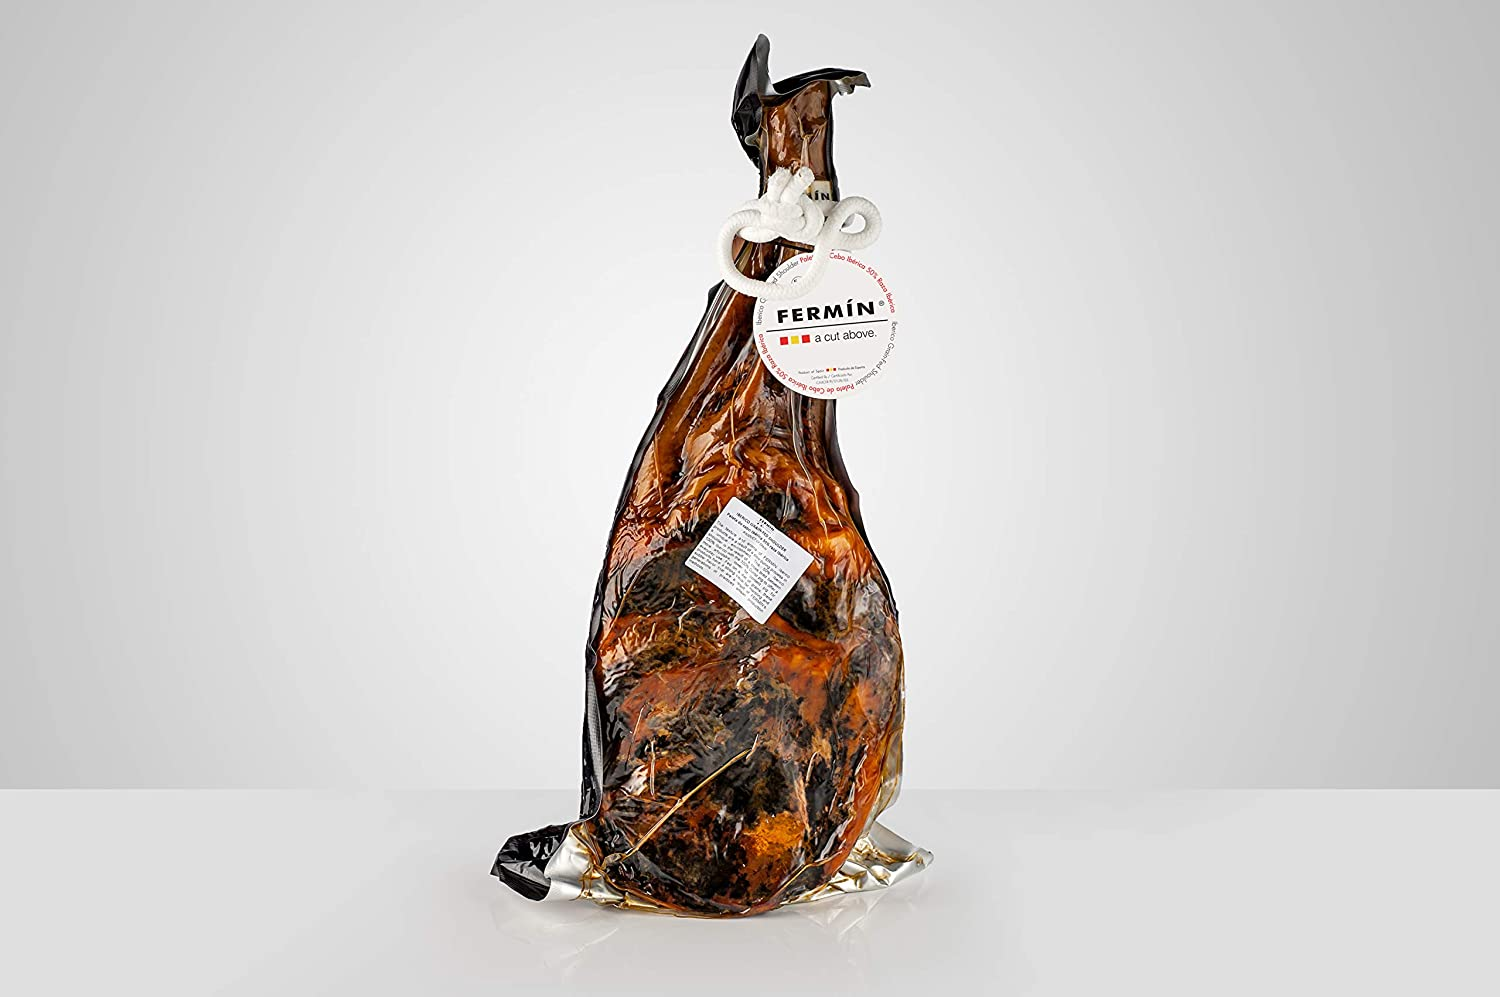 Fermin Iberico Shoulder (10-11 lbs) All natural, No Nitrites or Nitrites Added. Exclusive by Dao Gourmet Foods (No Accessories Included)